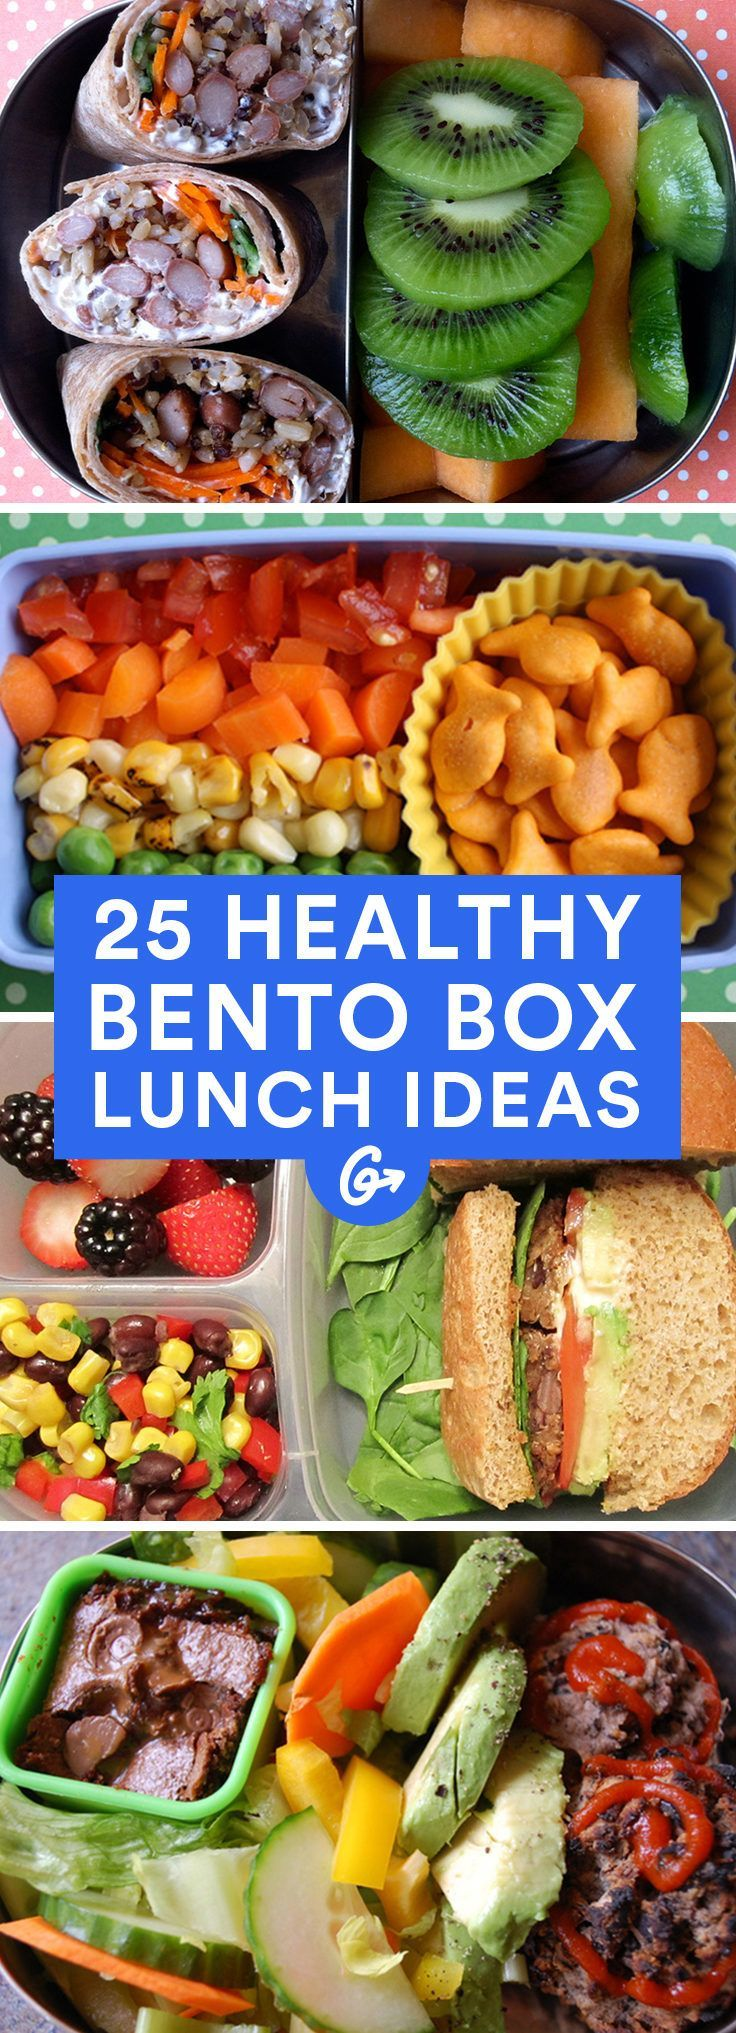 best 25 office lunch ideas ideas on pinterest healthy lunches healthy packed lunches and. Black Bedroom Furniture Sets. Home Design Ideas